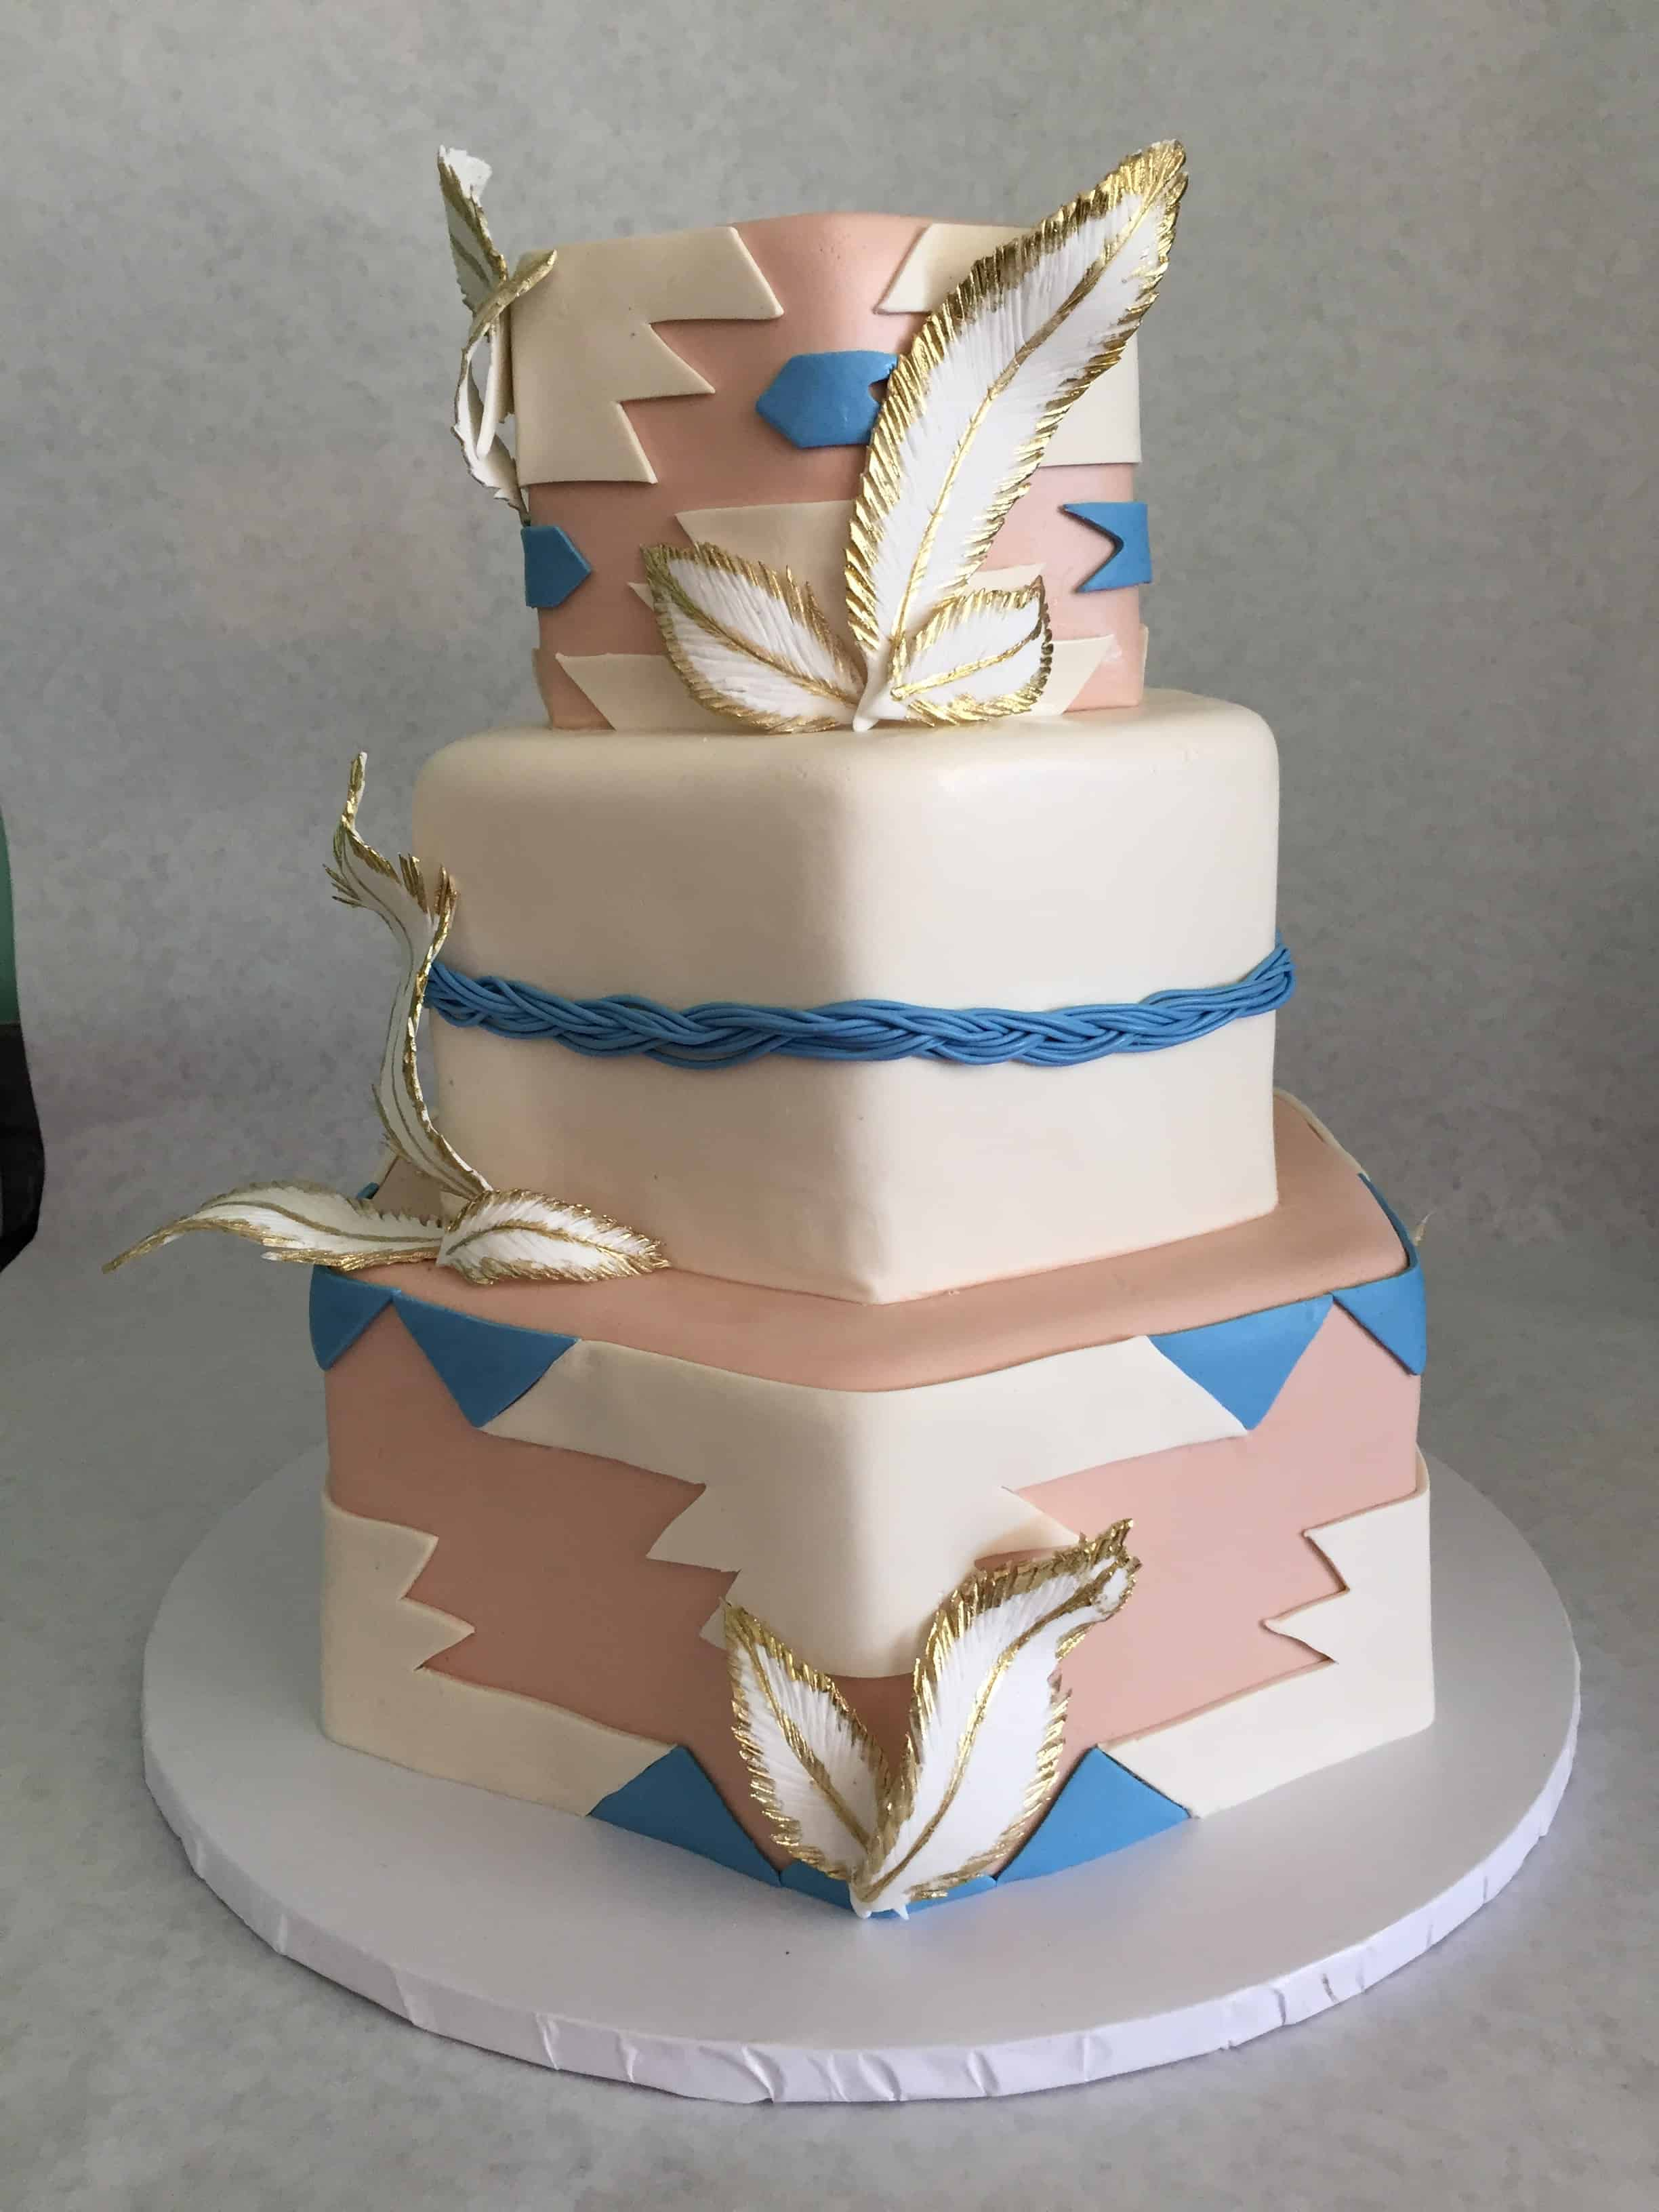 American Indian Blanket and Feather Cake with Gold Accents